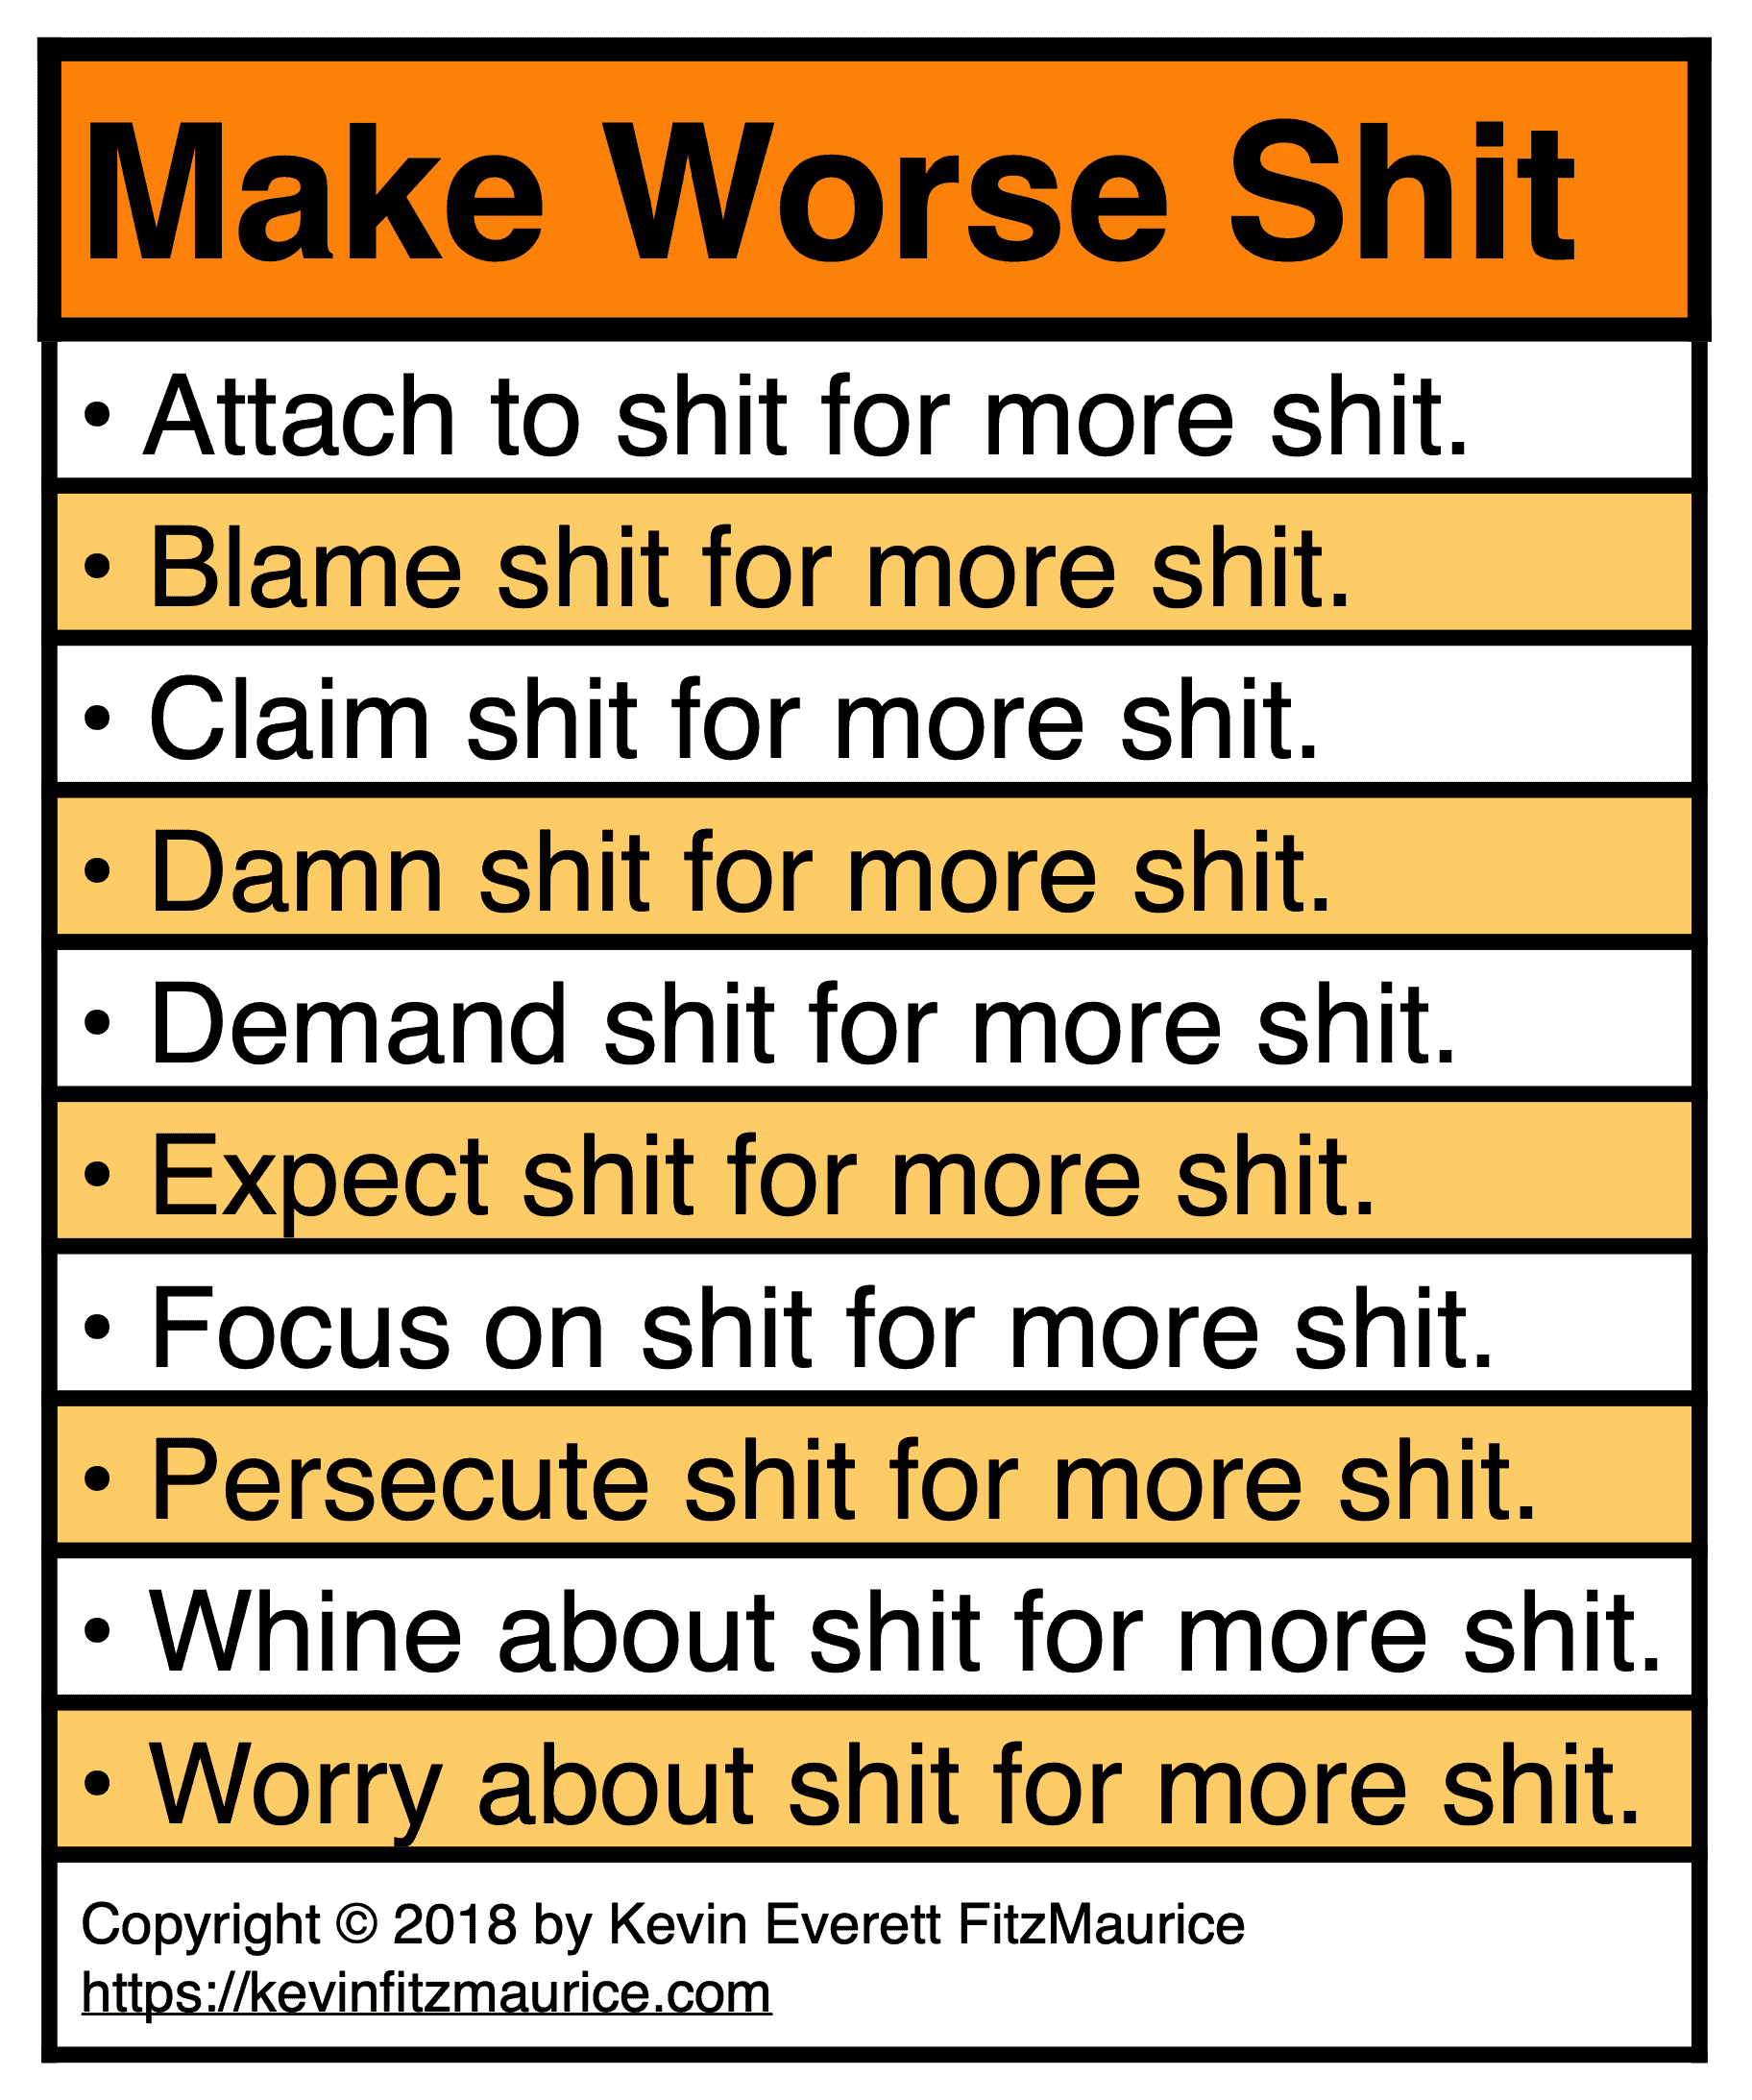 Make Worse Strategy Focuses on Shit